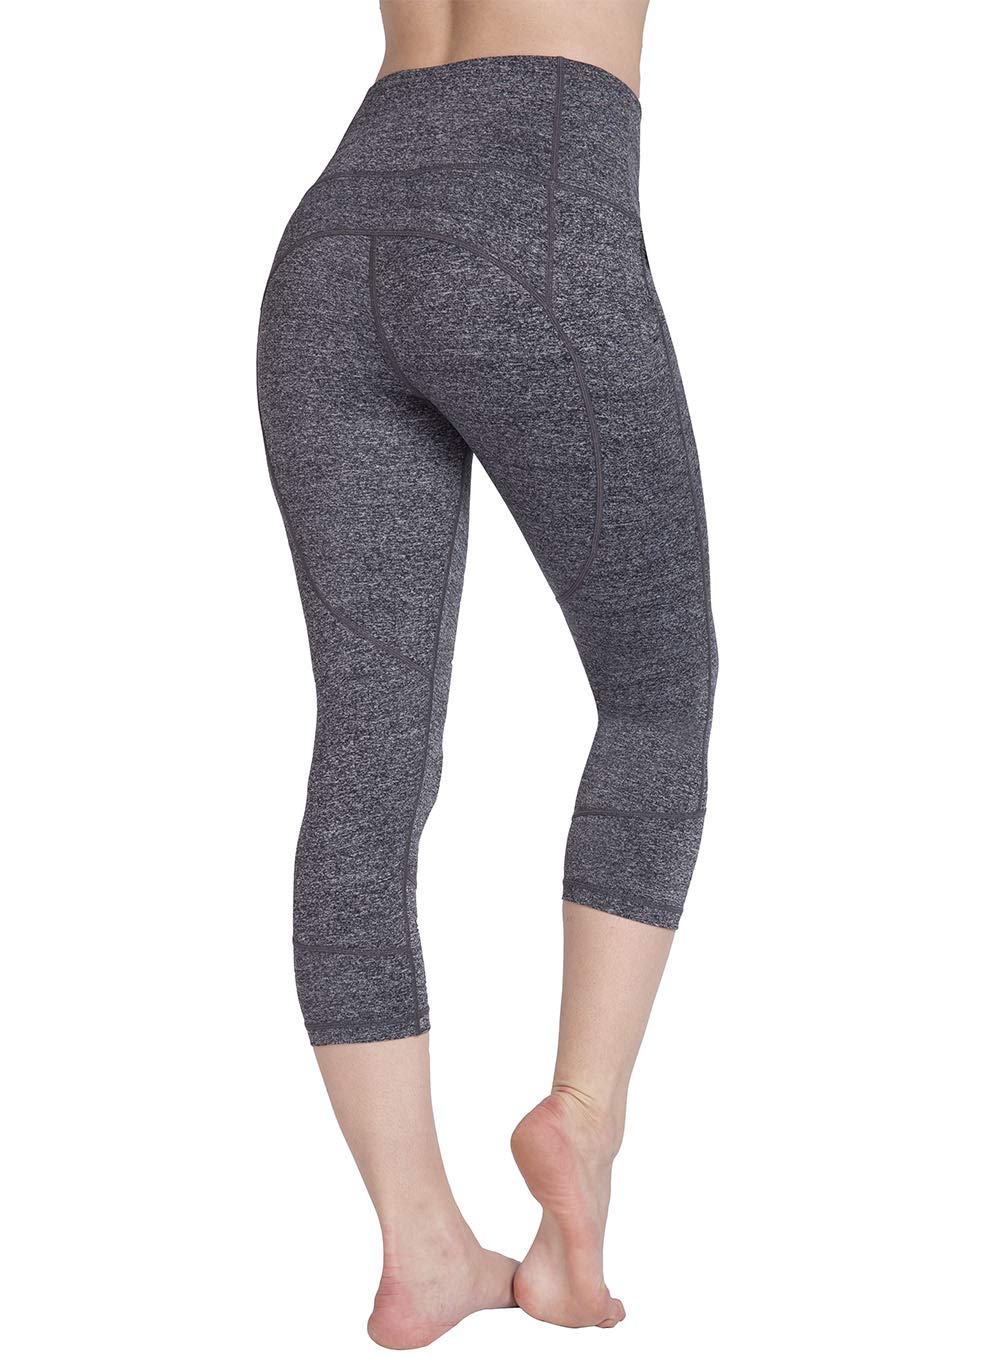 UURUN Women's Capri Workout Leggings with Pockets High Waisted Tummy Control Yoga Pants Non See Through Compression Running Capris for Fitness Gym Athletic 784 Grey S by UURUN